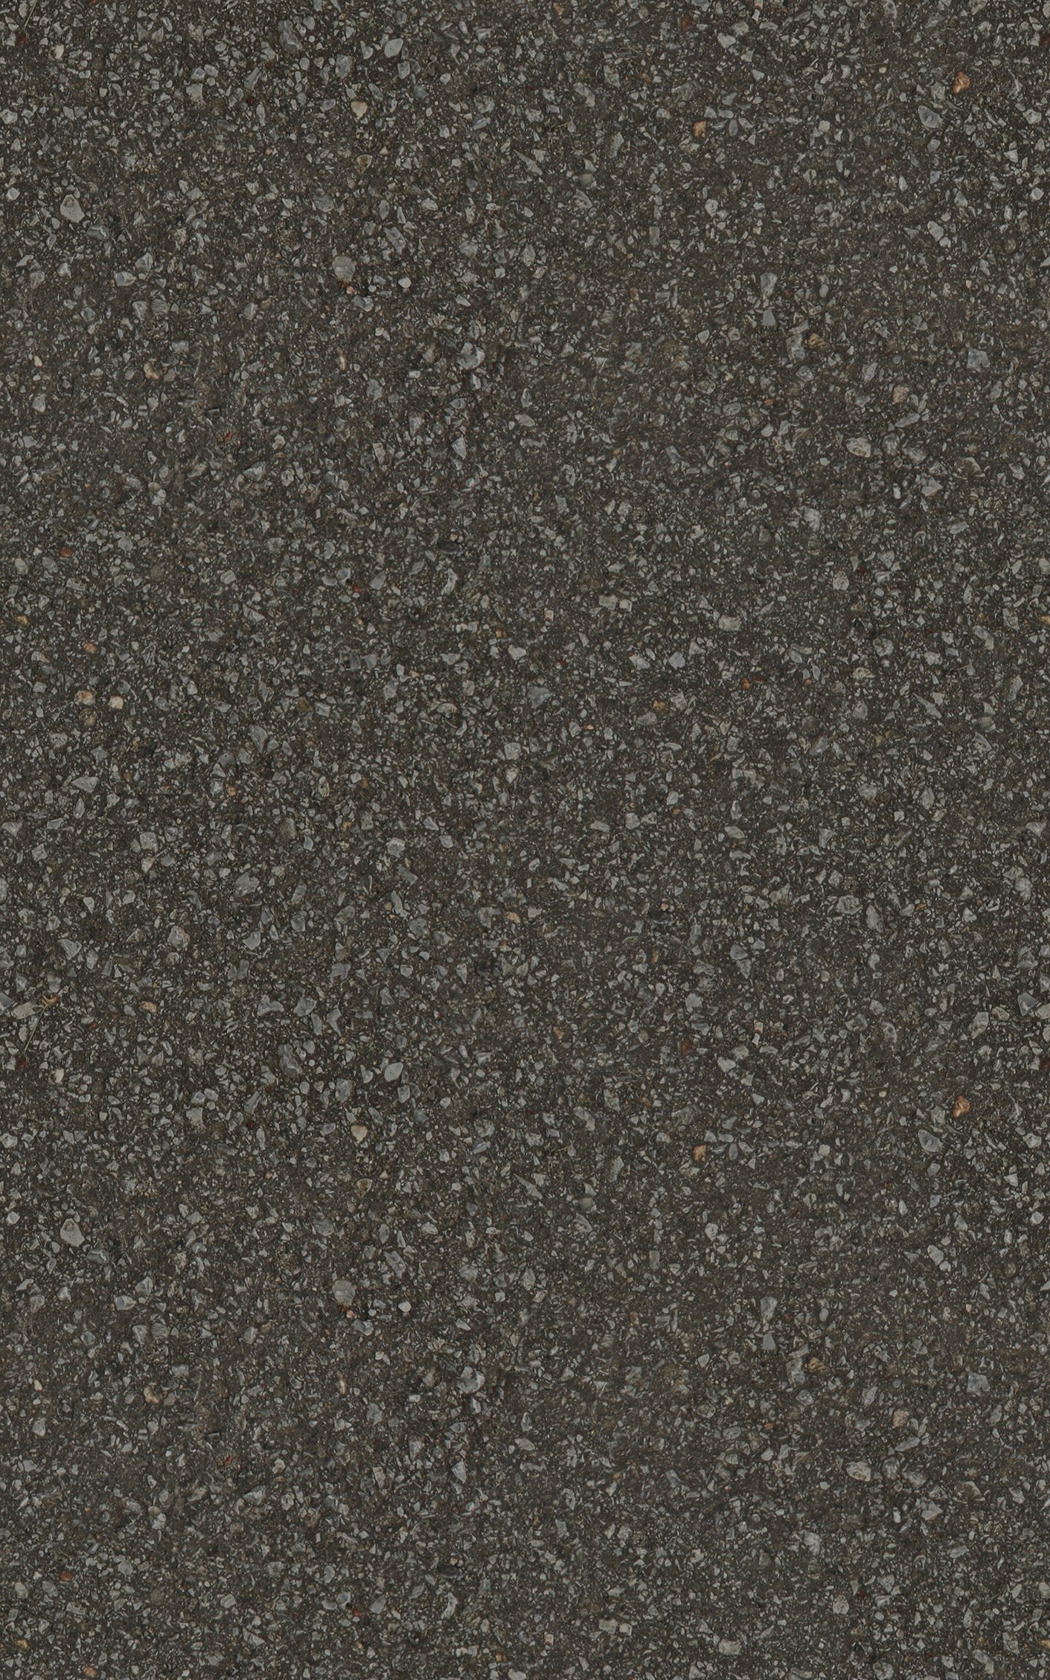 Black Asphalt Download Royalty Free Texture